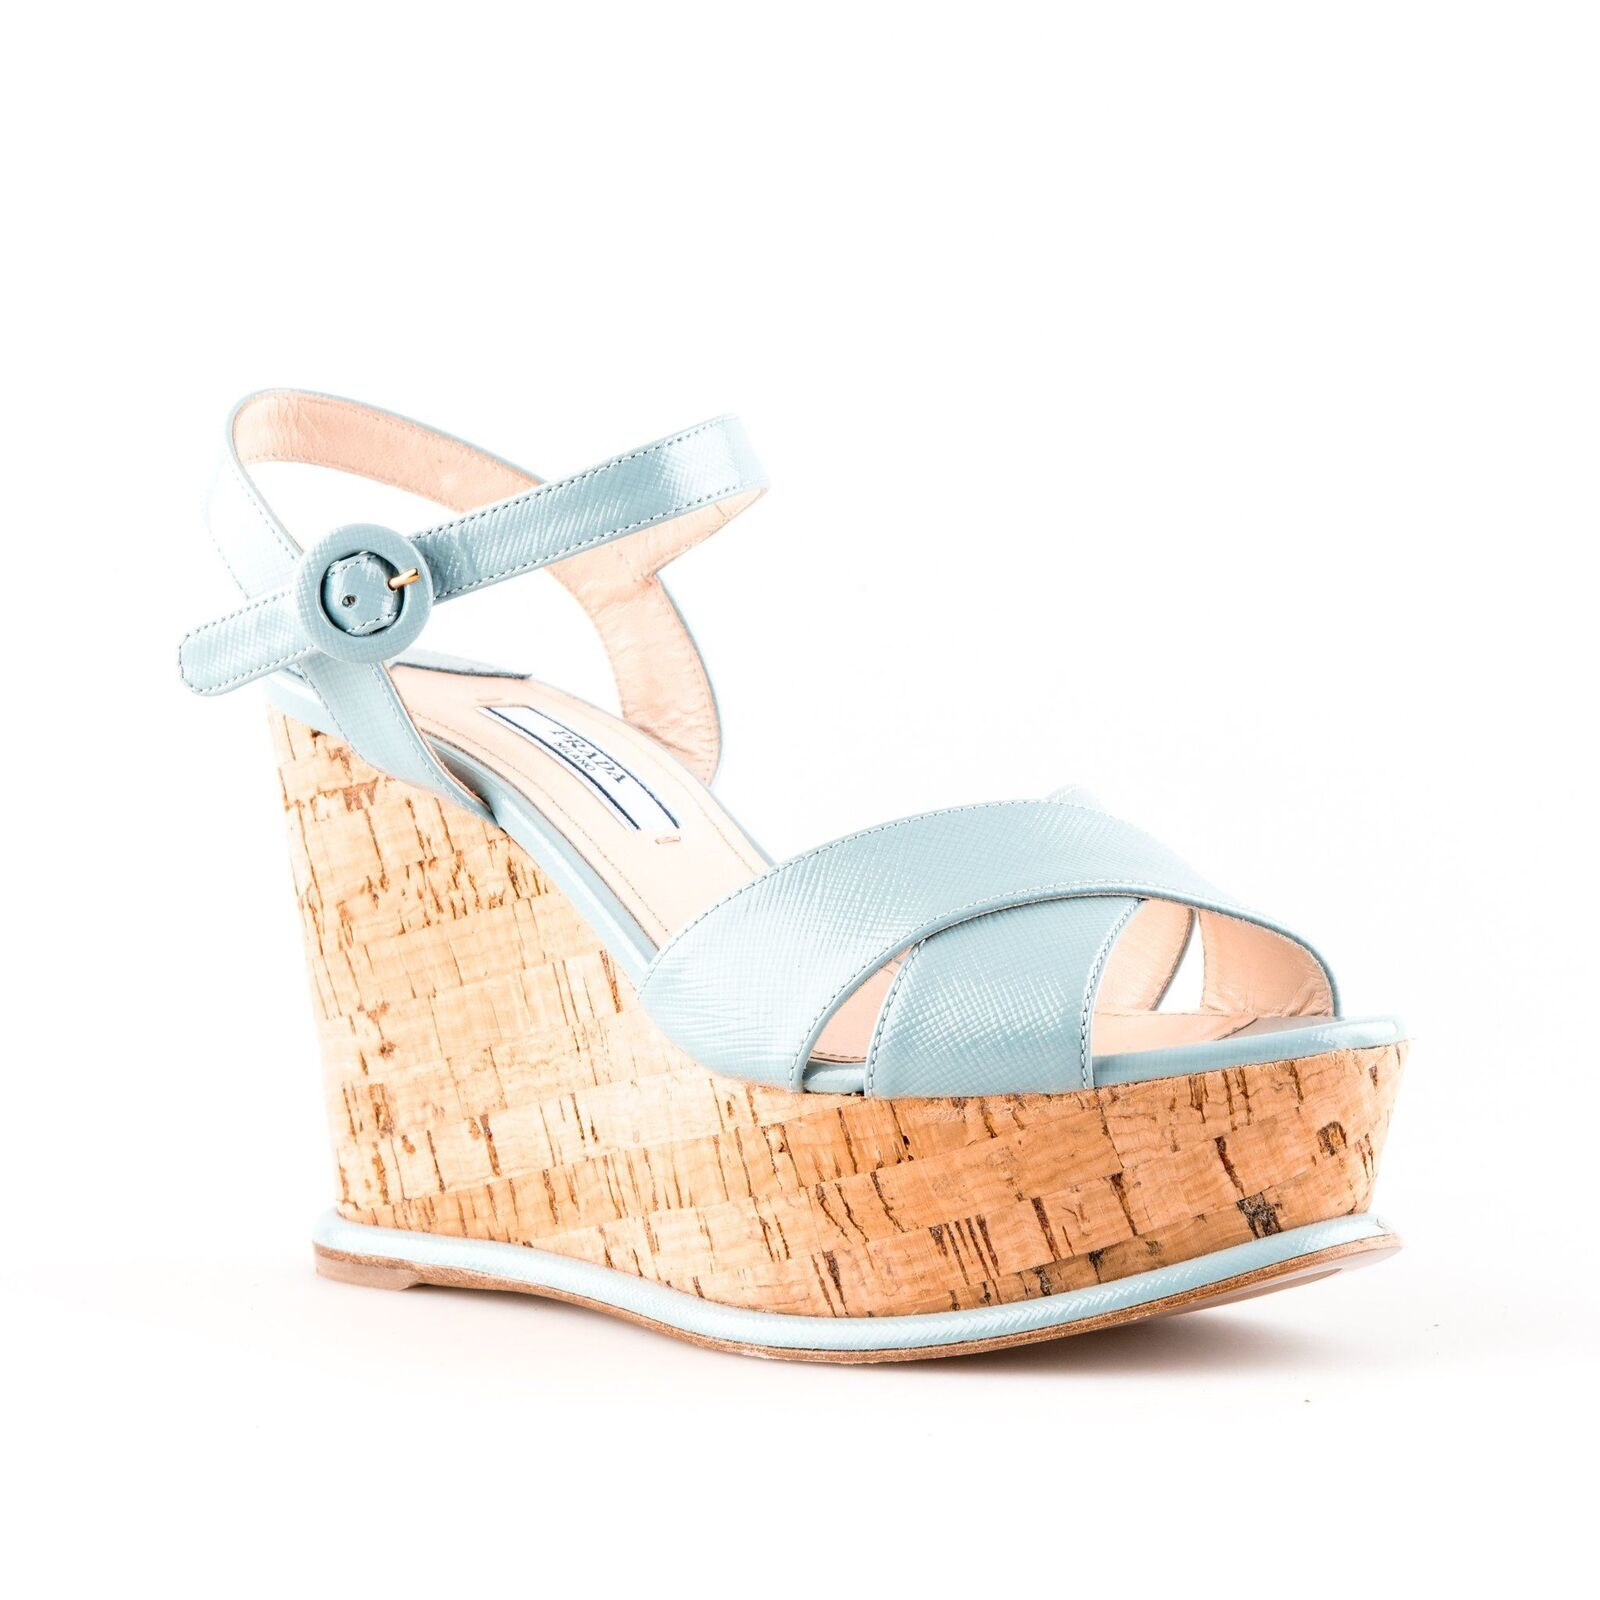 Prada Light bluee Leather Strappy Cork Platform Platform Platform Wedge Sandals - Size 36.5 922835